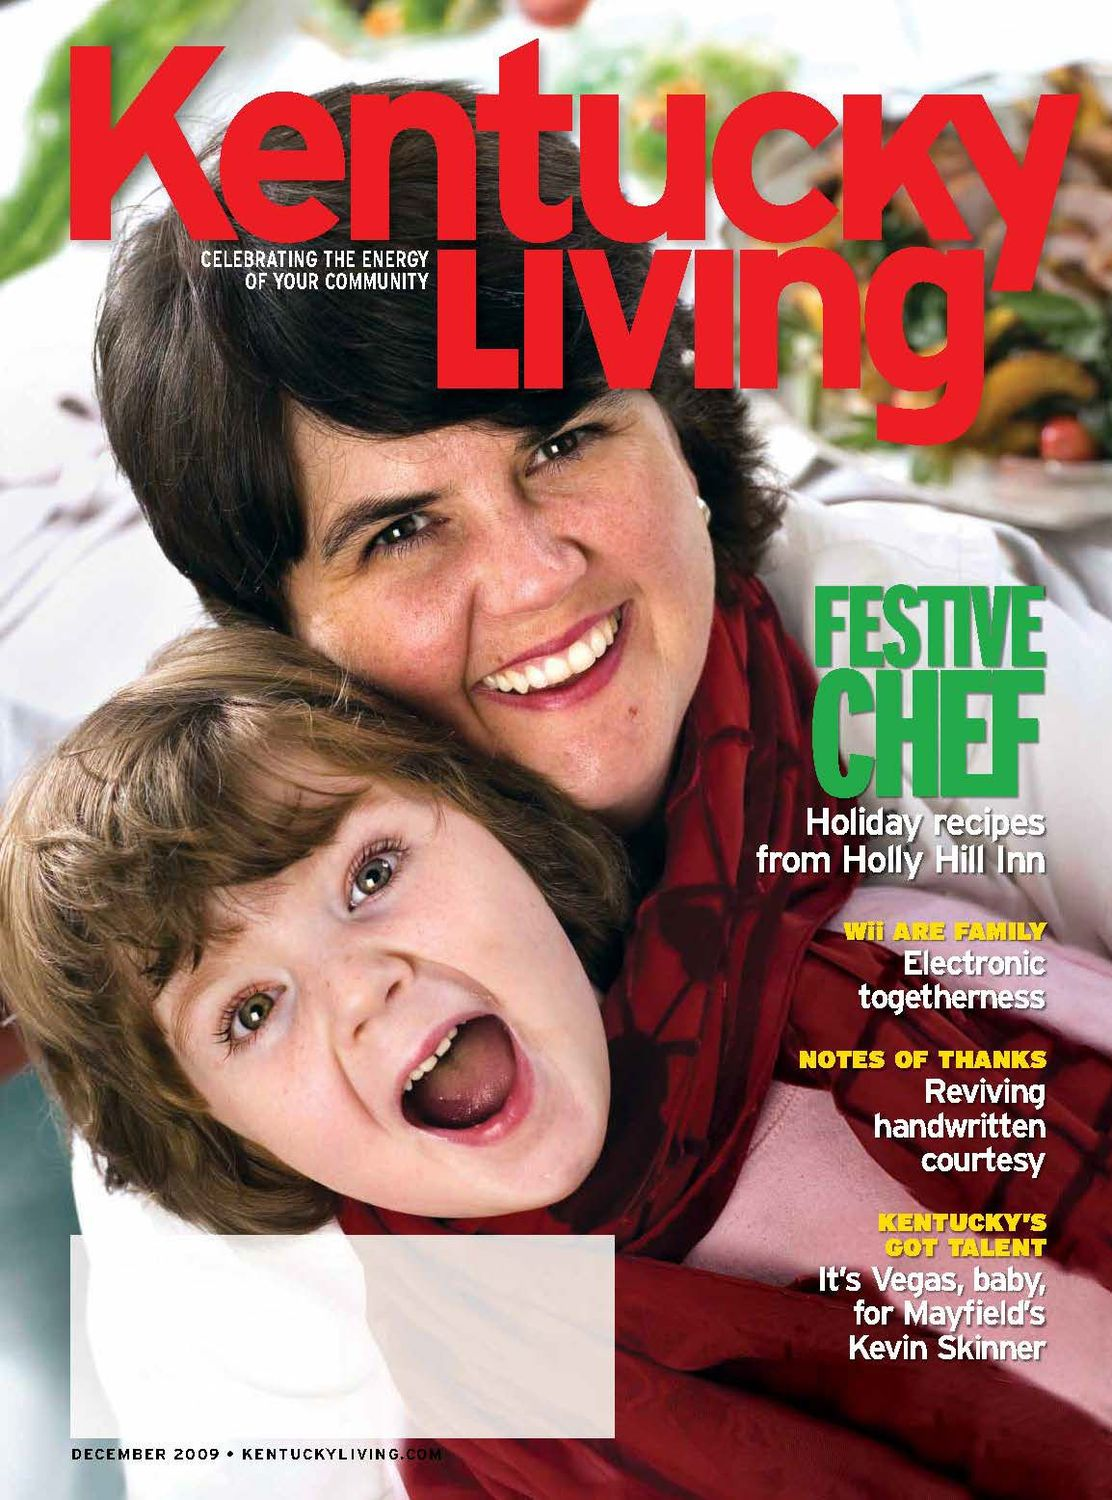 Chef Ouita Michel was featured in the December 2009 Kentucky Living Magazine